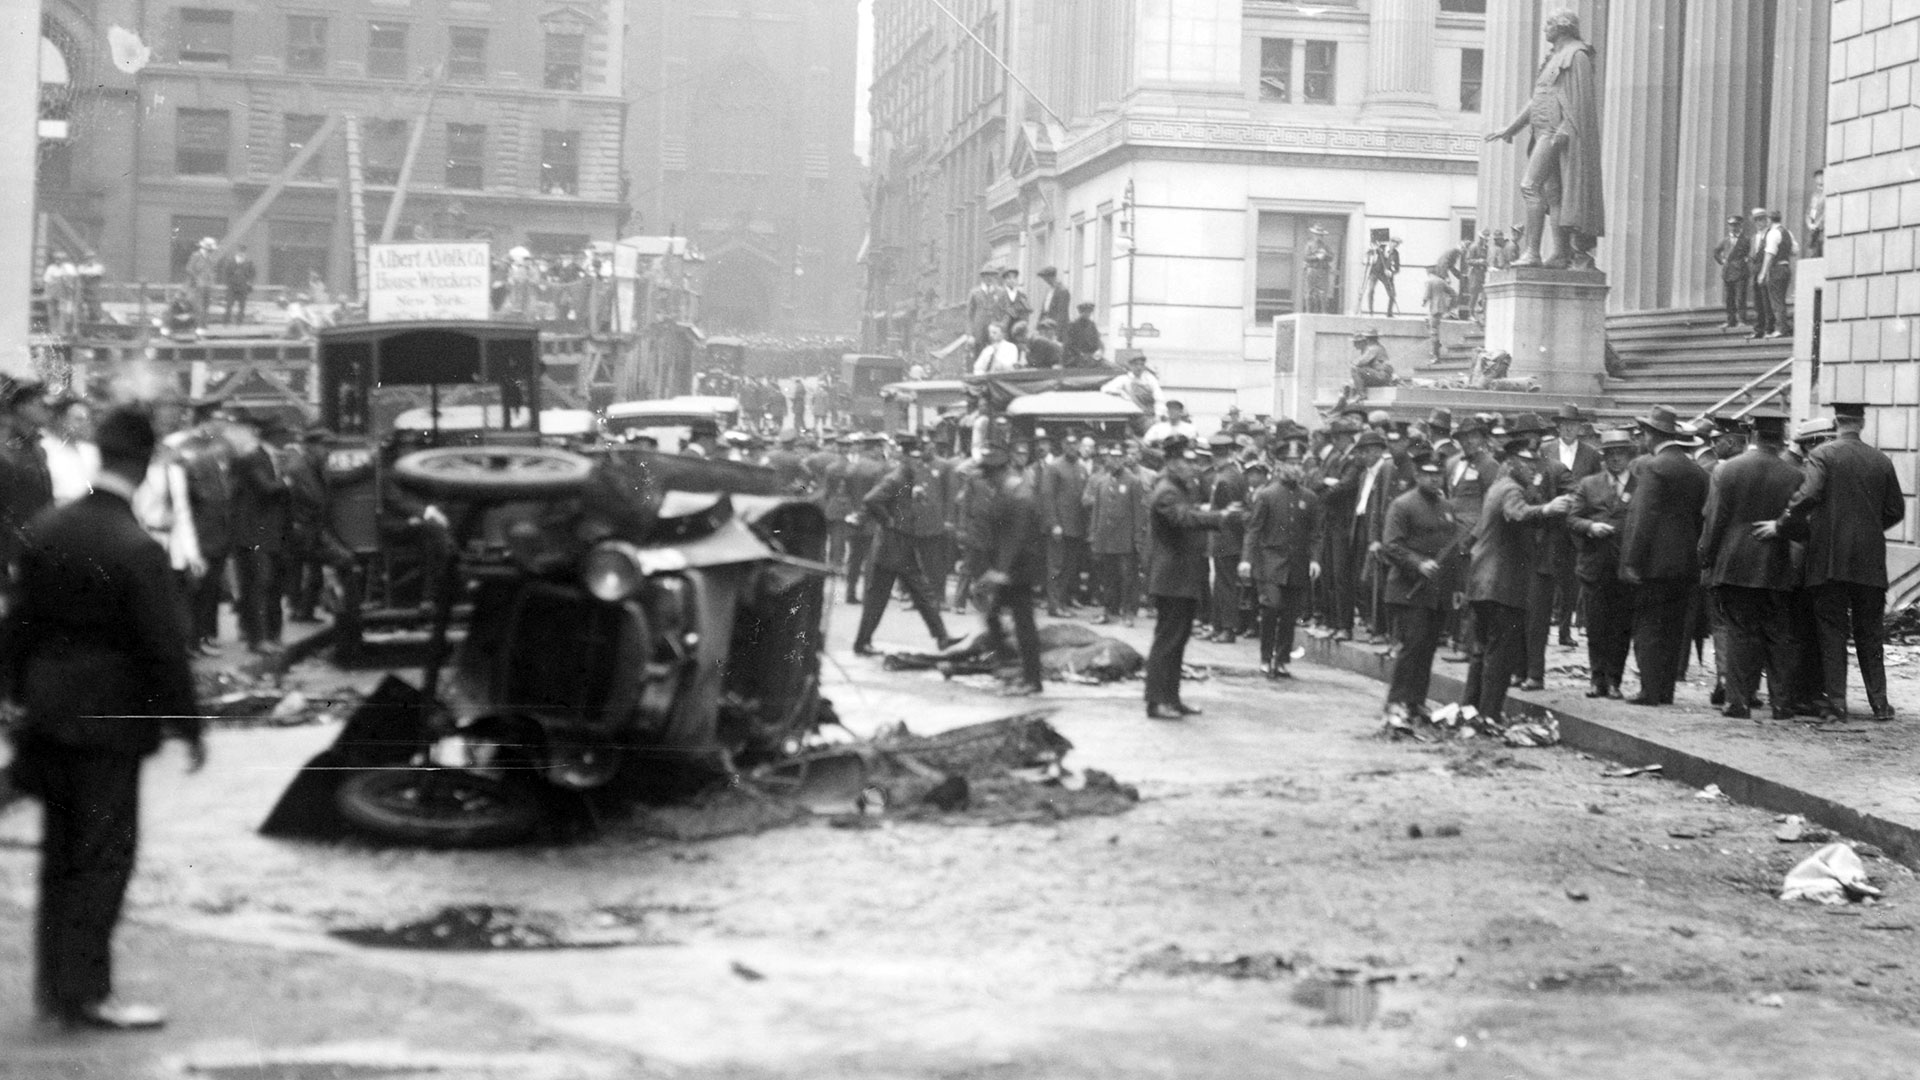 The blown-out car and deceased horse on Wall Street after the bombing, September 16, 1920.